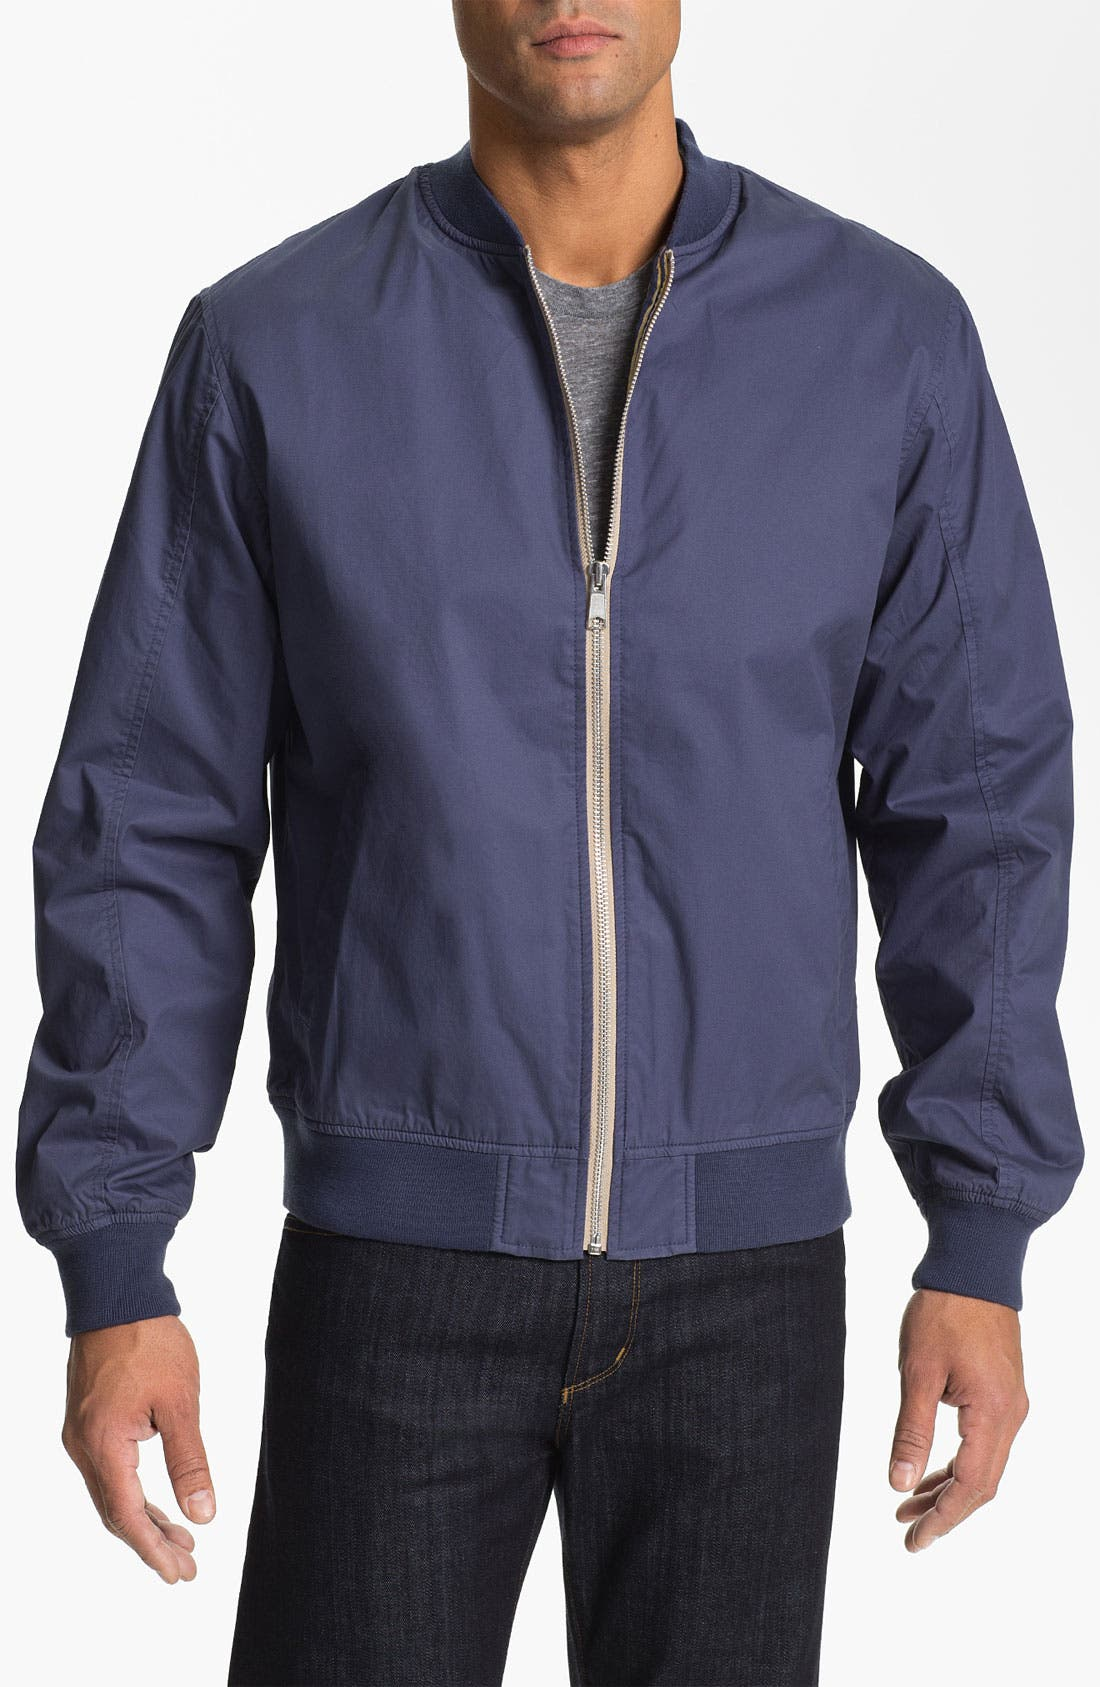 Alternate Image 1 Selected - Cutter & Buck 'Edmonds Washed' Cotton Jacket (Big & Tall) (Online Only)